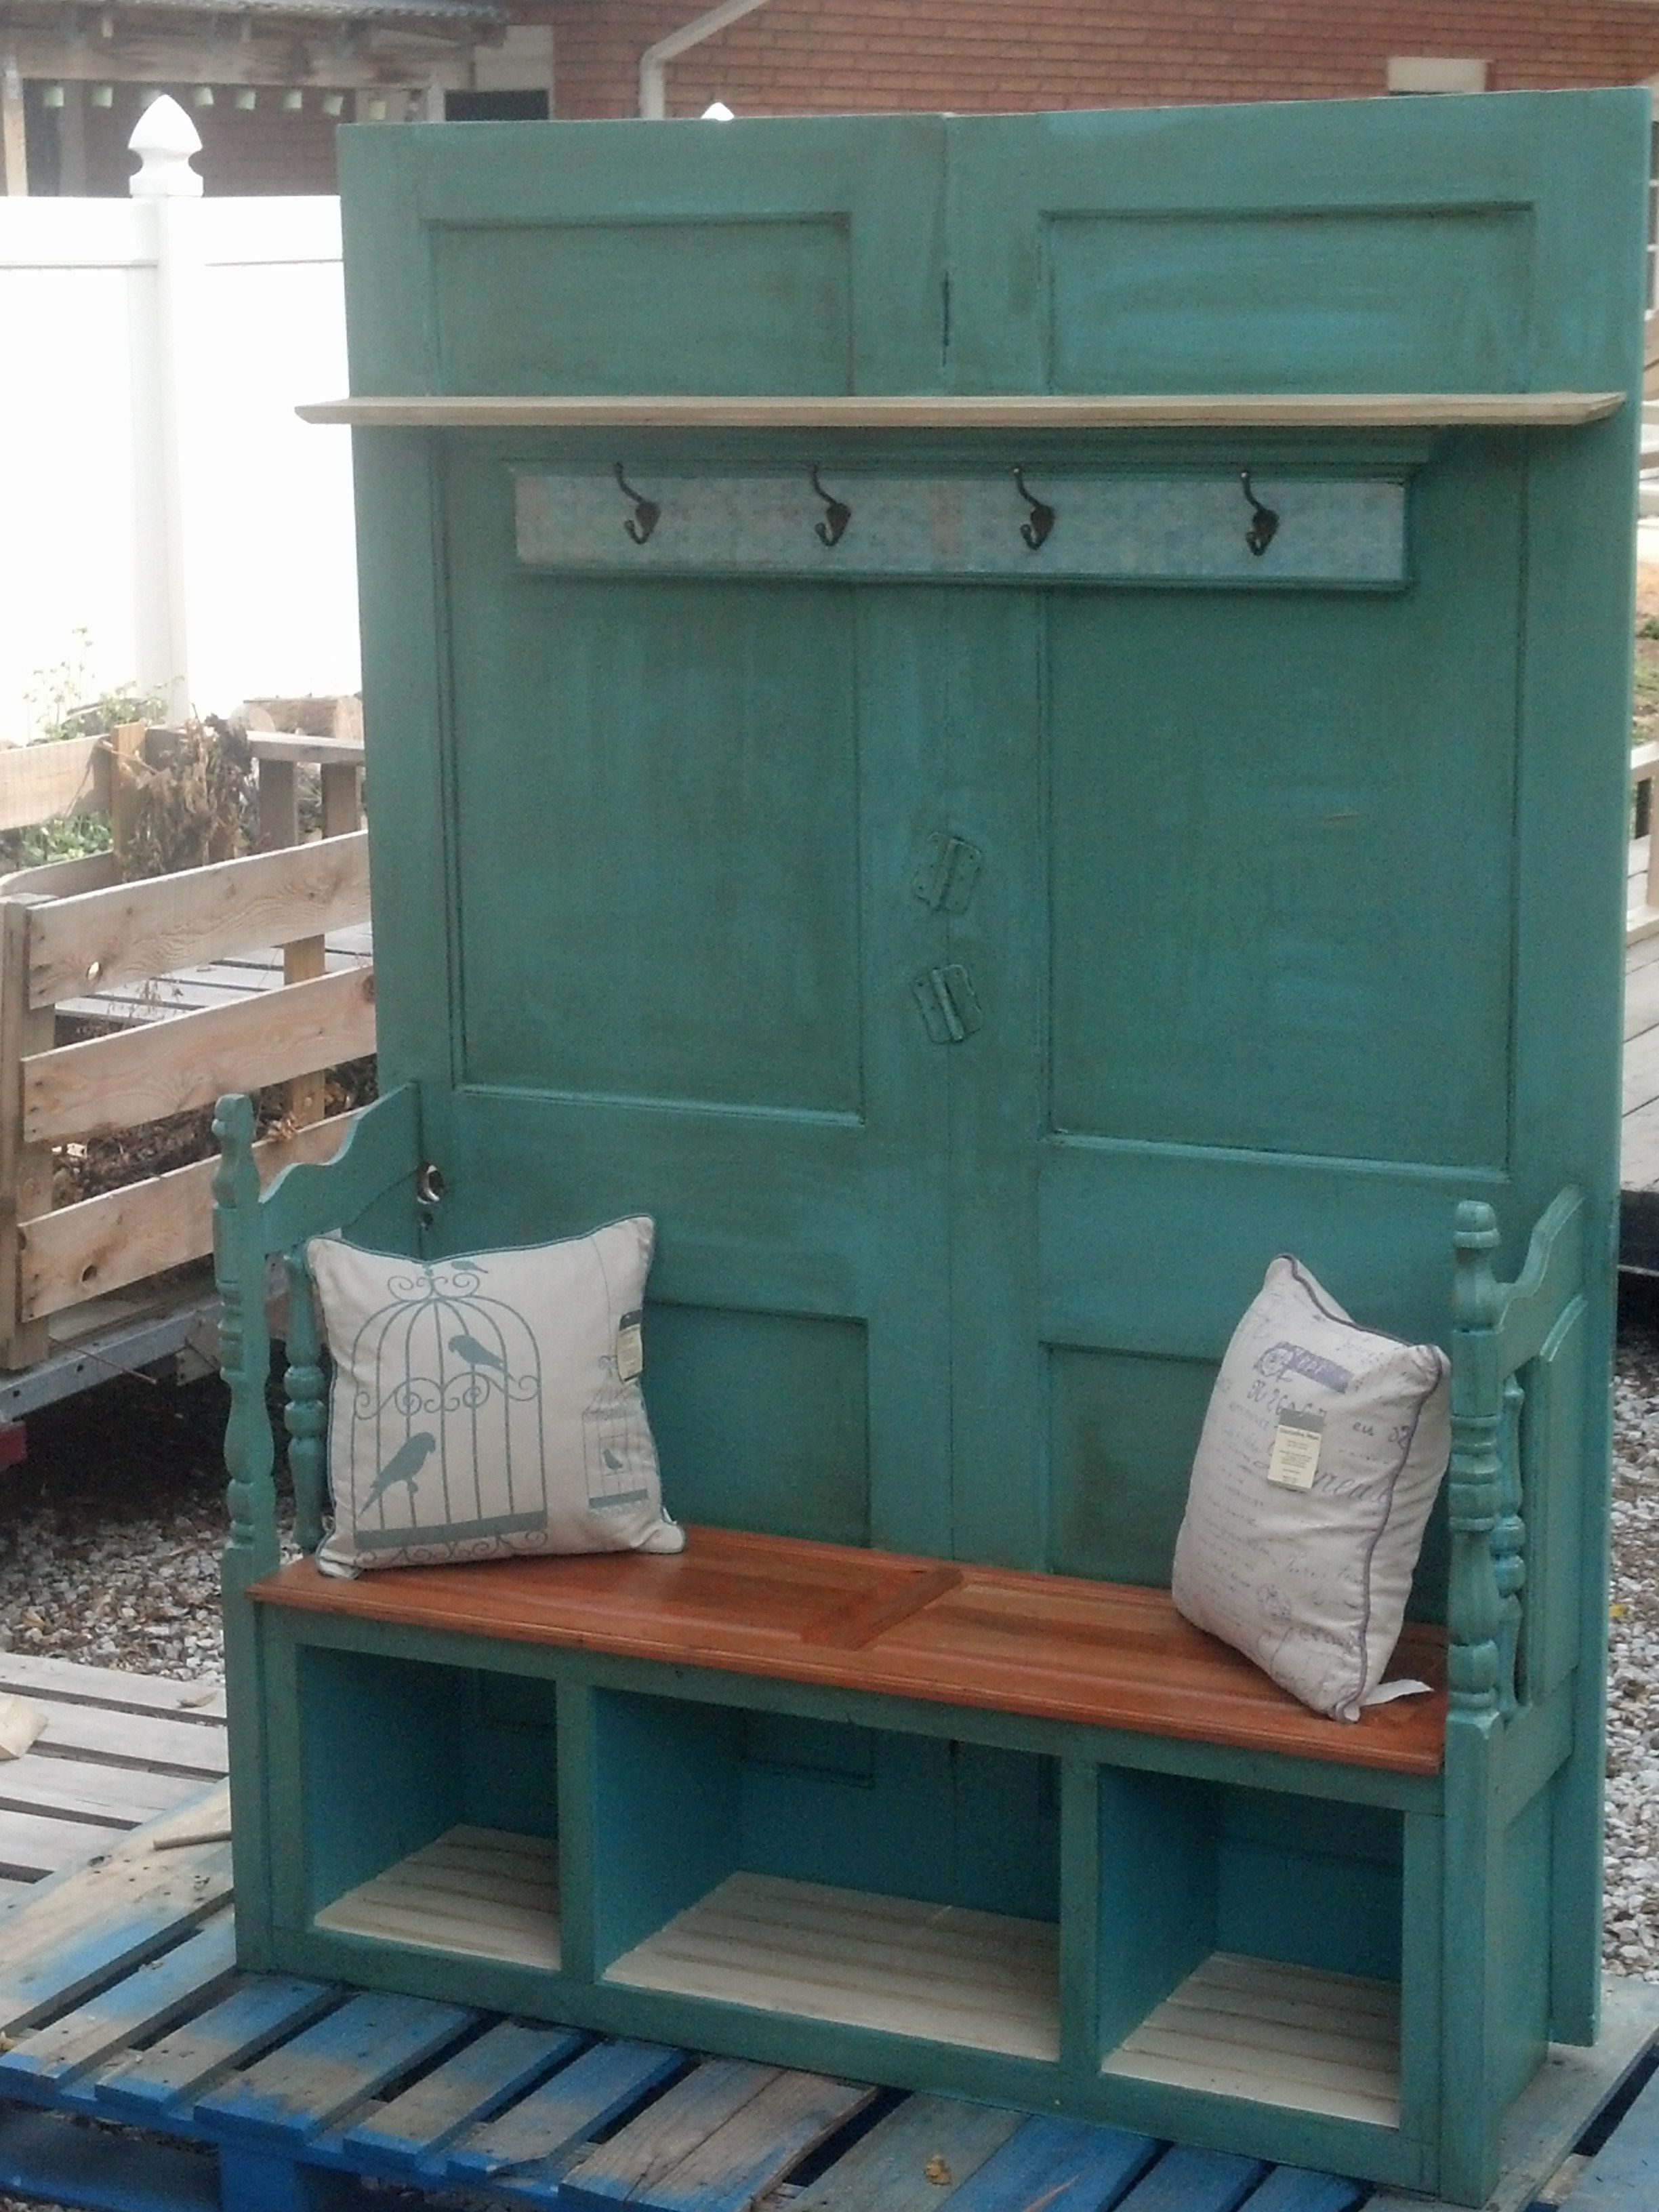 Restauración De Muebles Viejos Pin By Tracy Babcock On Up Cycled Projects Pinterest